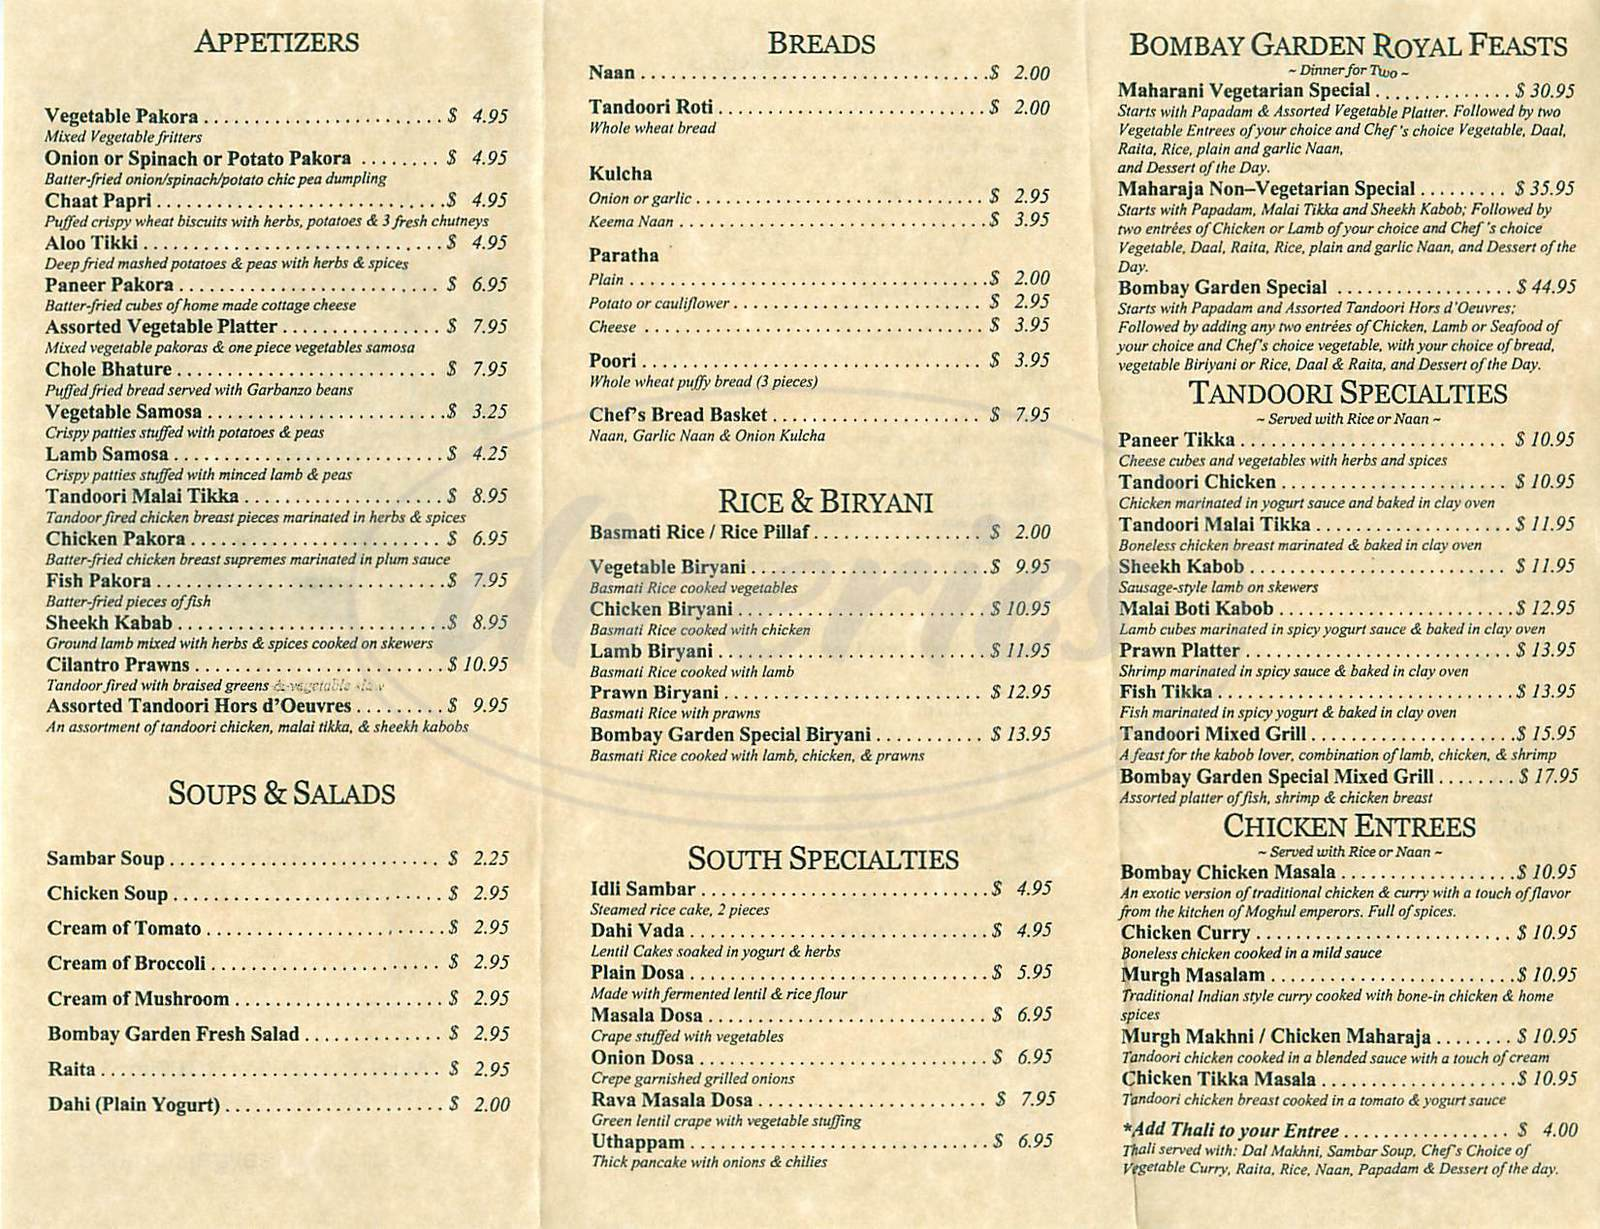 menu for Bombay Garden